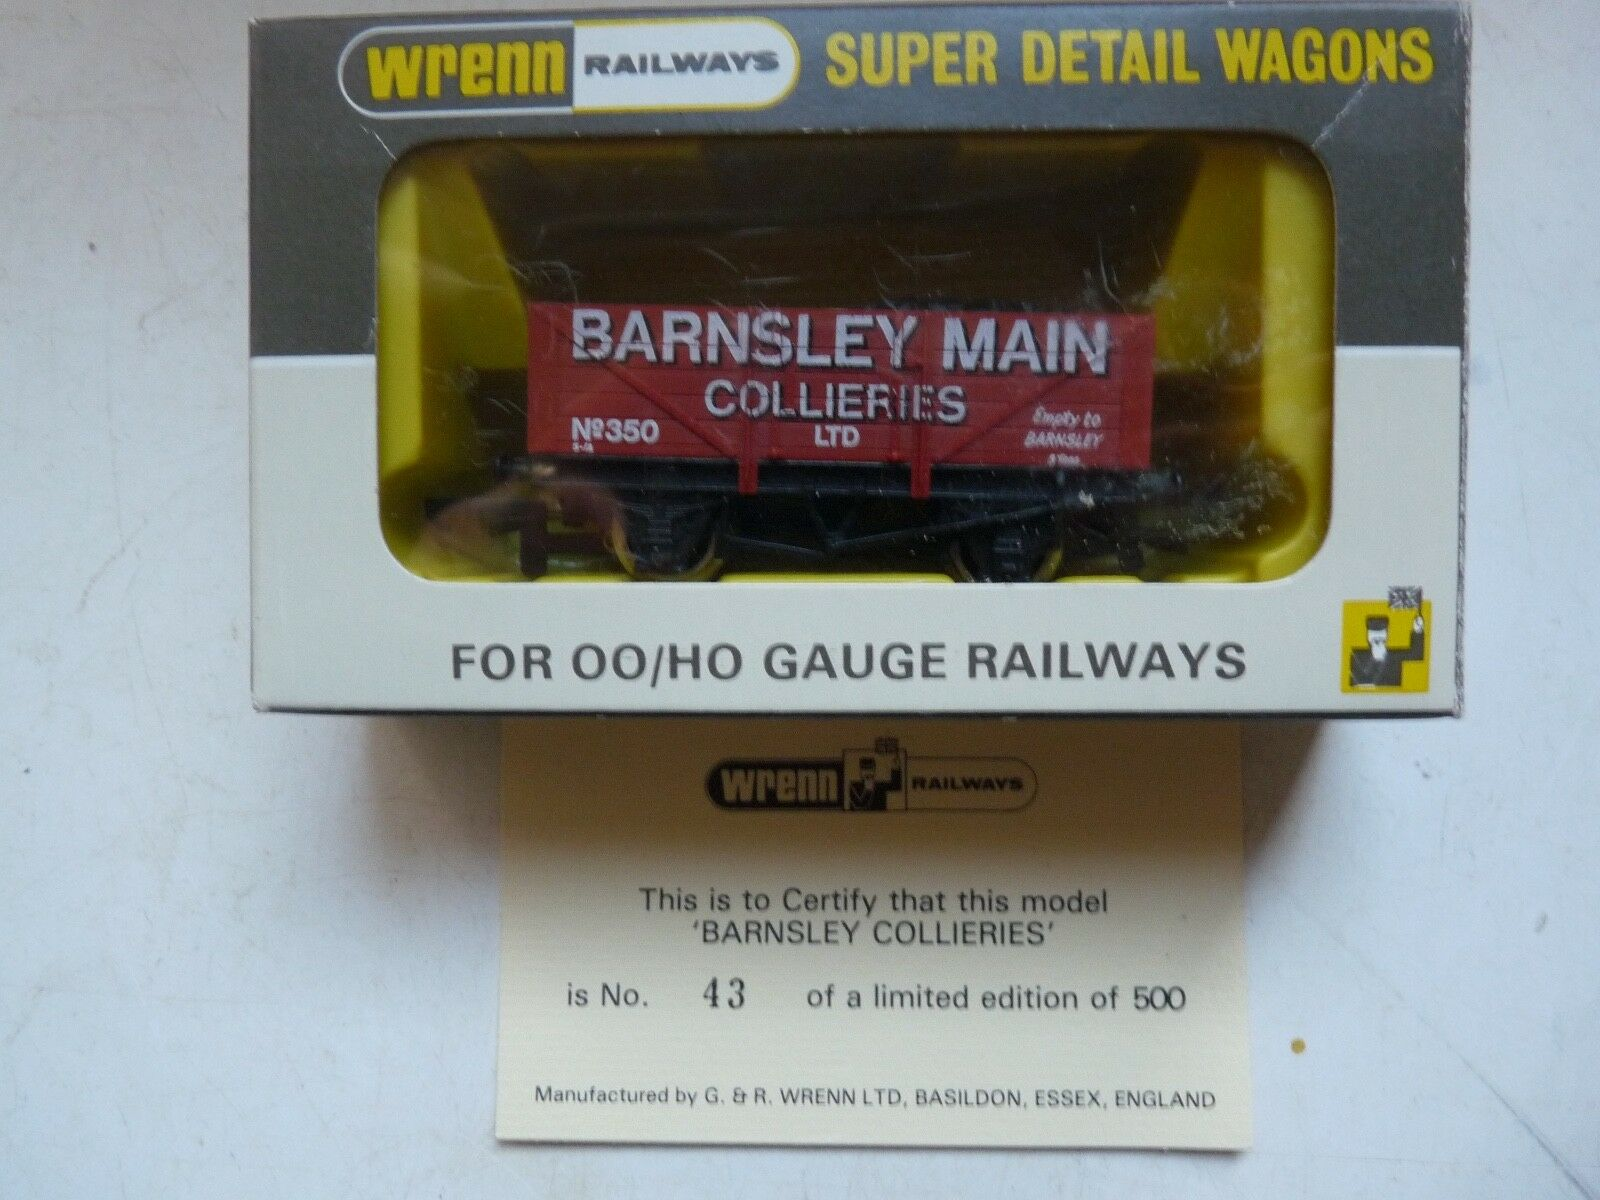 WRENN W.5500 'BARNSLEY COLLIERIES' 43 OF 500 LIMITED EDITION P4 MINT BOXED